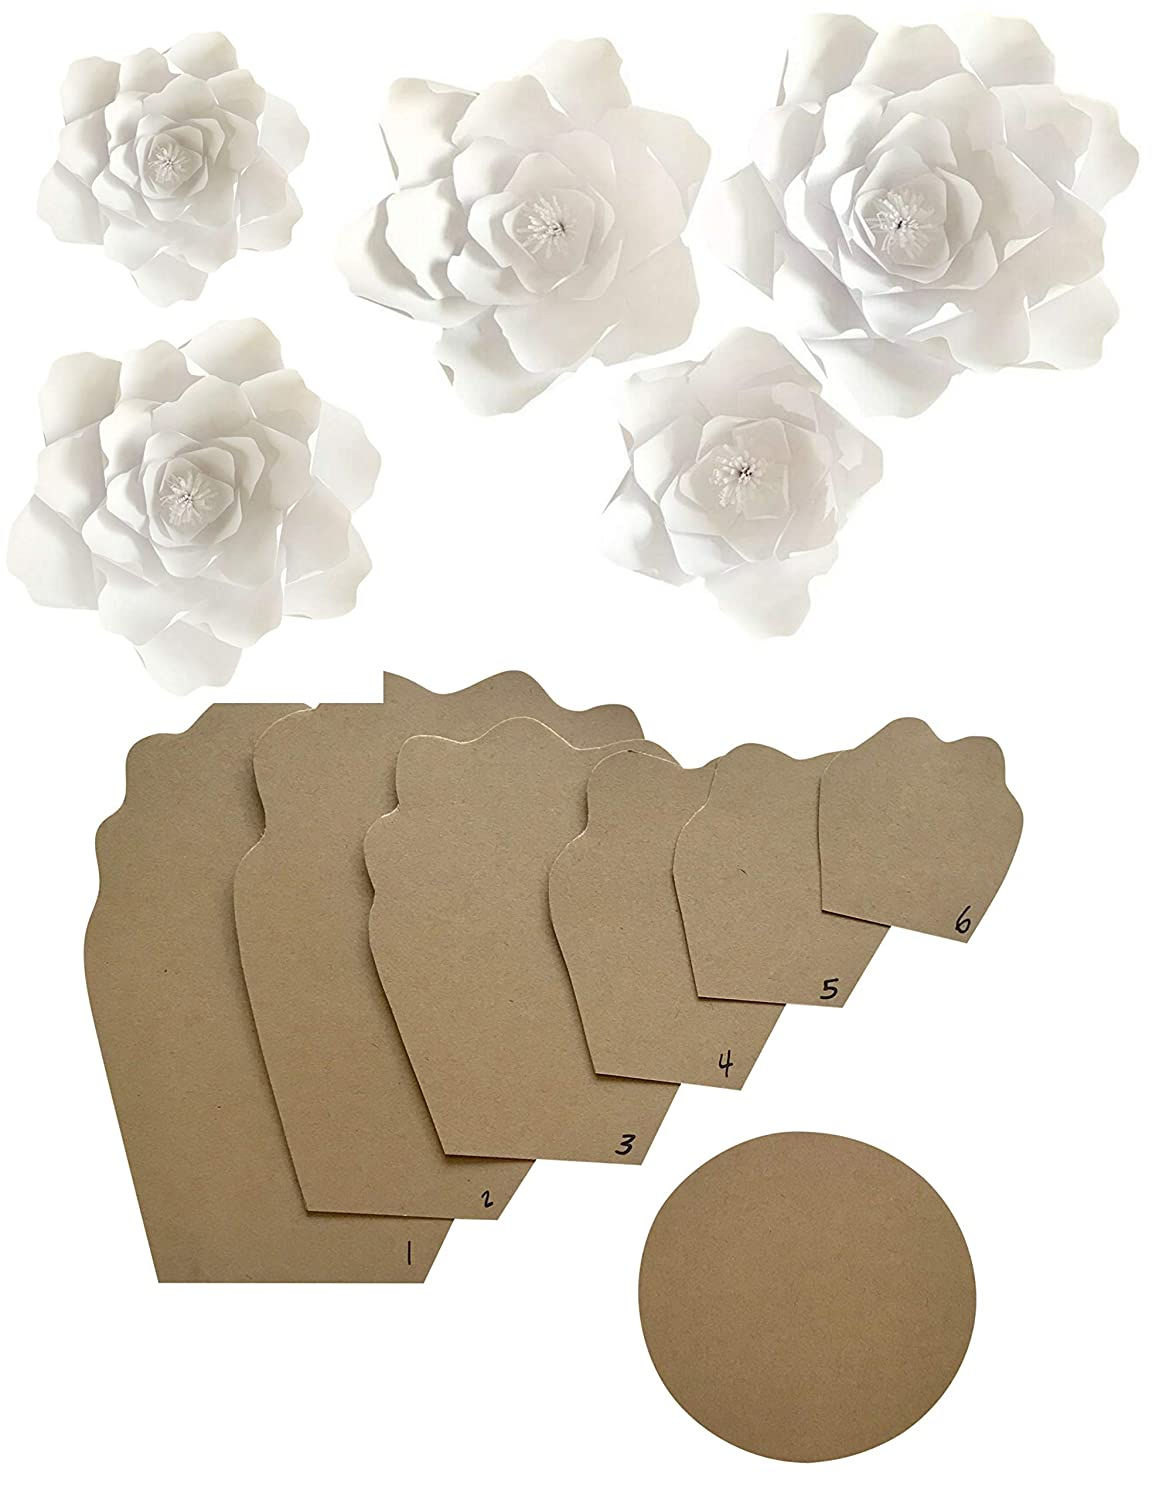 Paper Flower Template Kit Make Your Own Paper Flowers Paper Flowers Decoration Make Unlimited Flowers Diy Do It Yourself Make All Sizes